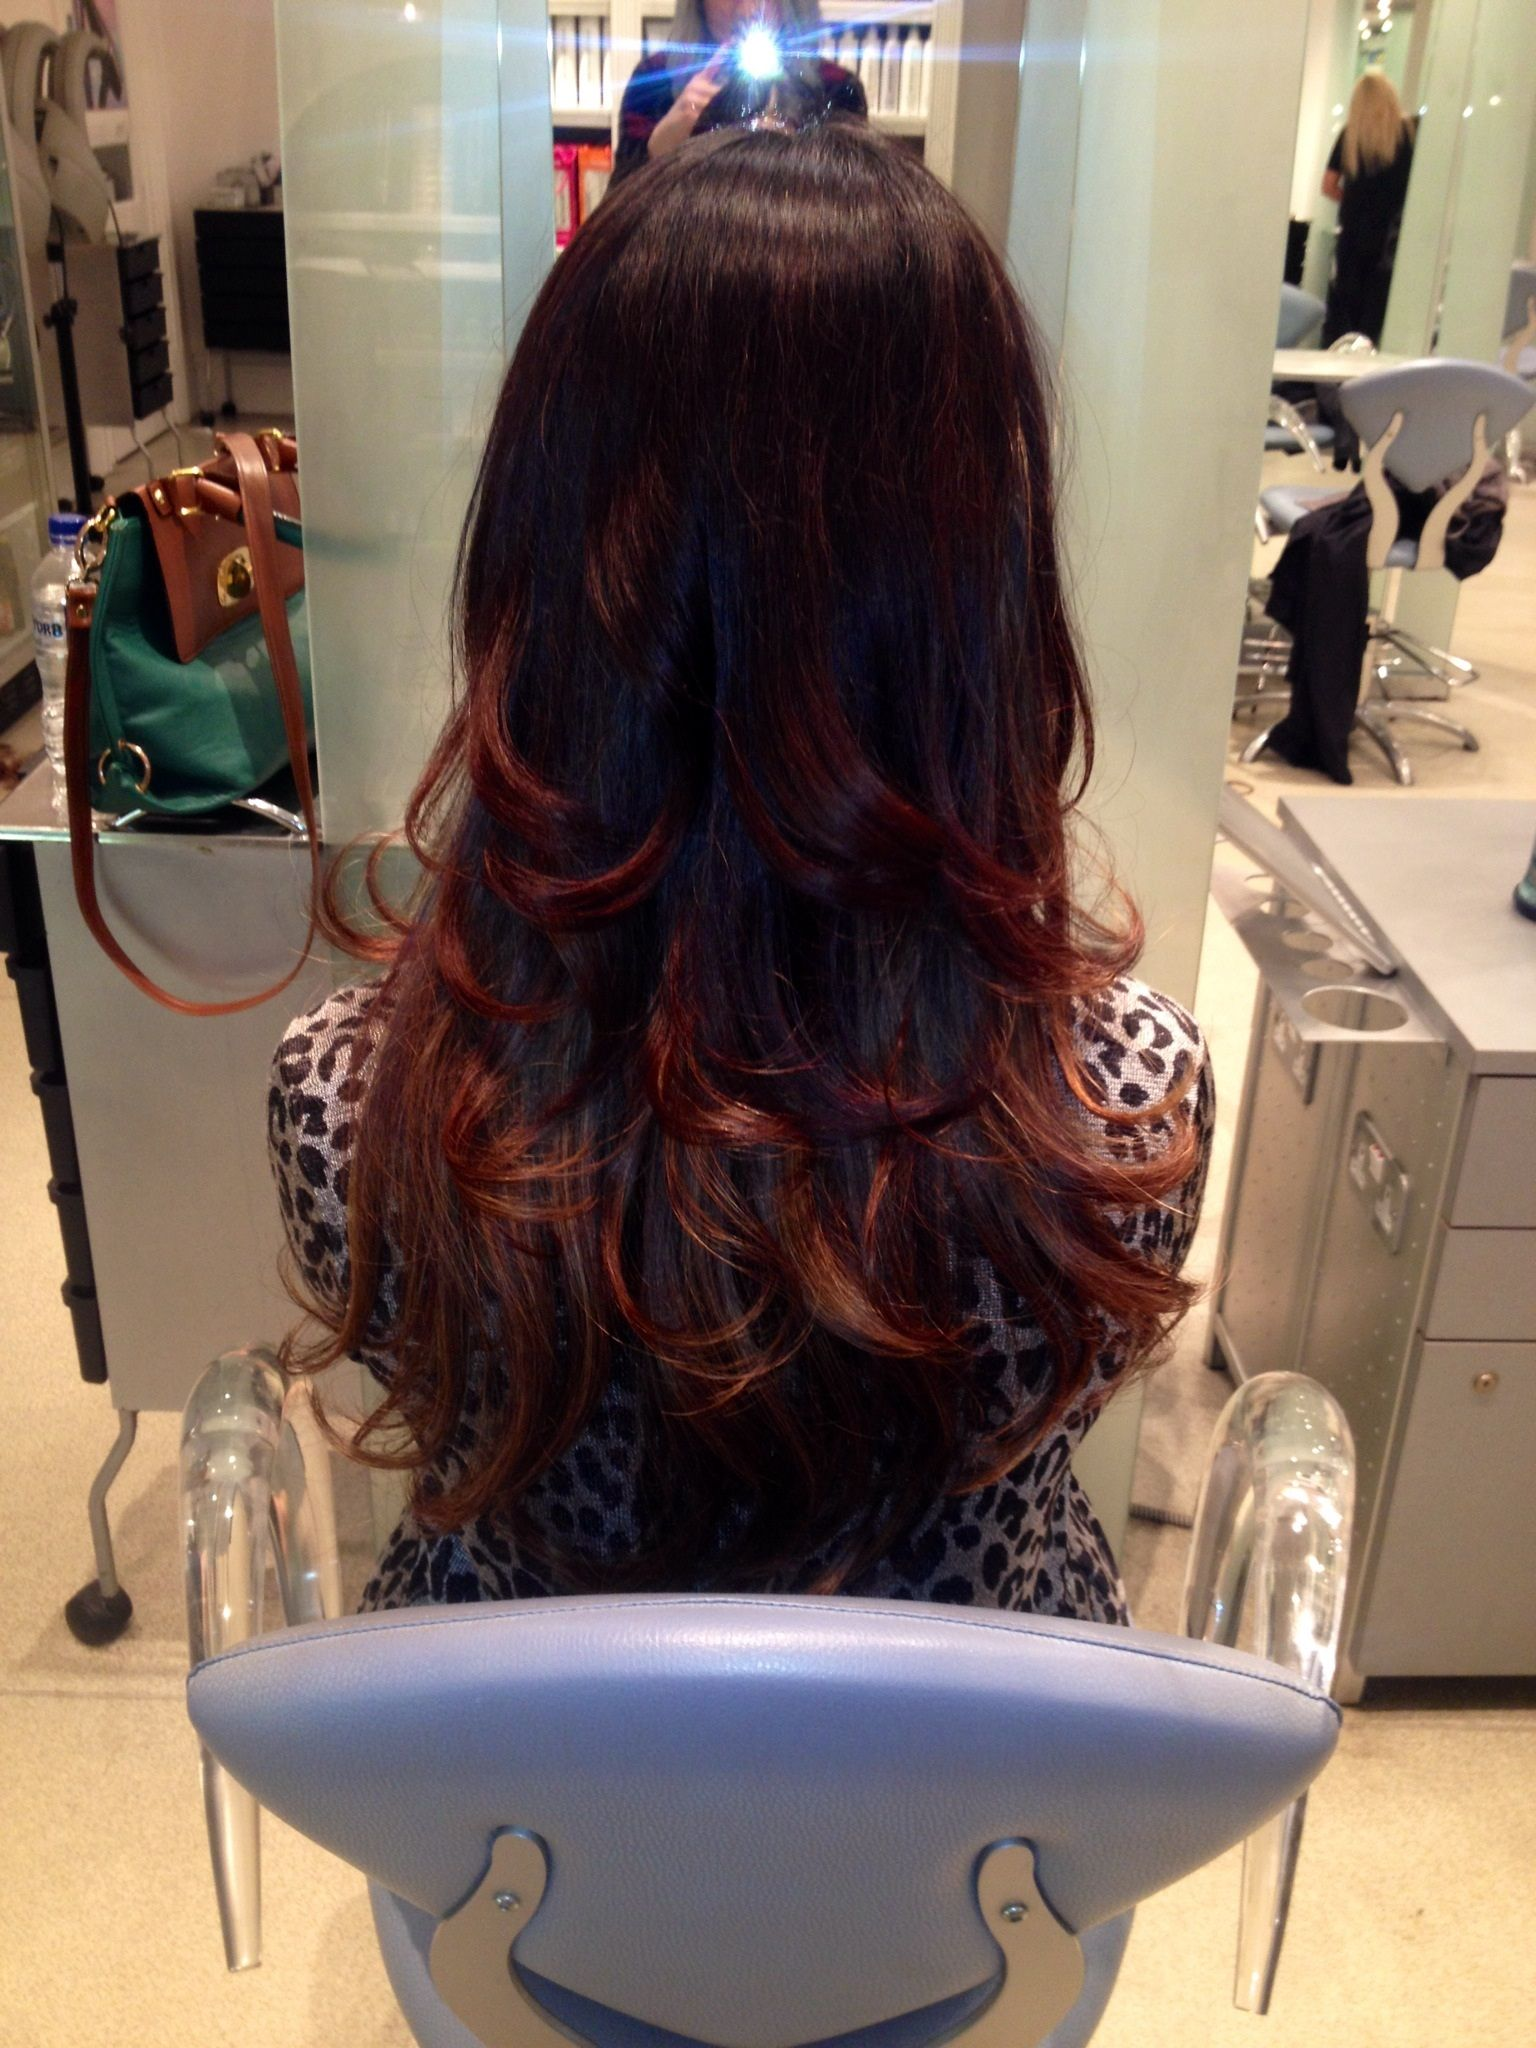 Glamorous bouncy blow-dry. By Paige Barnes at Moda Greco ...